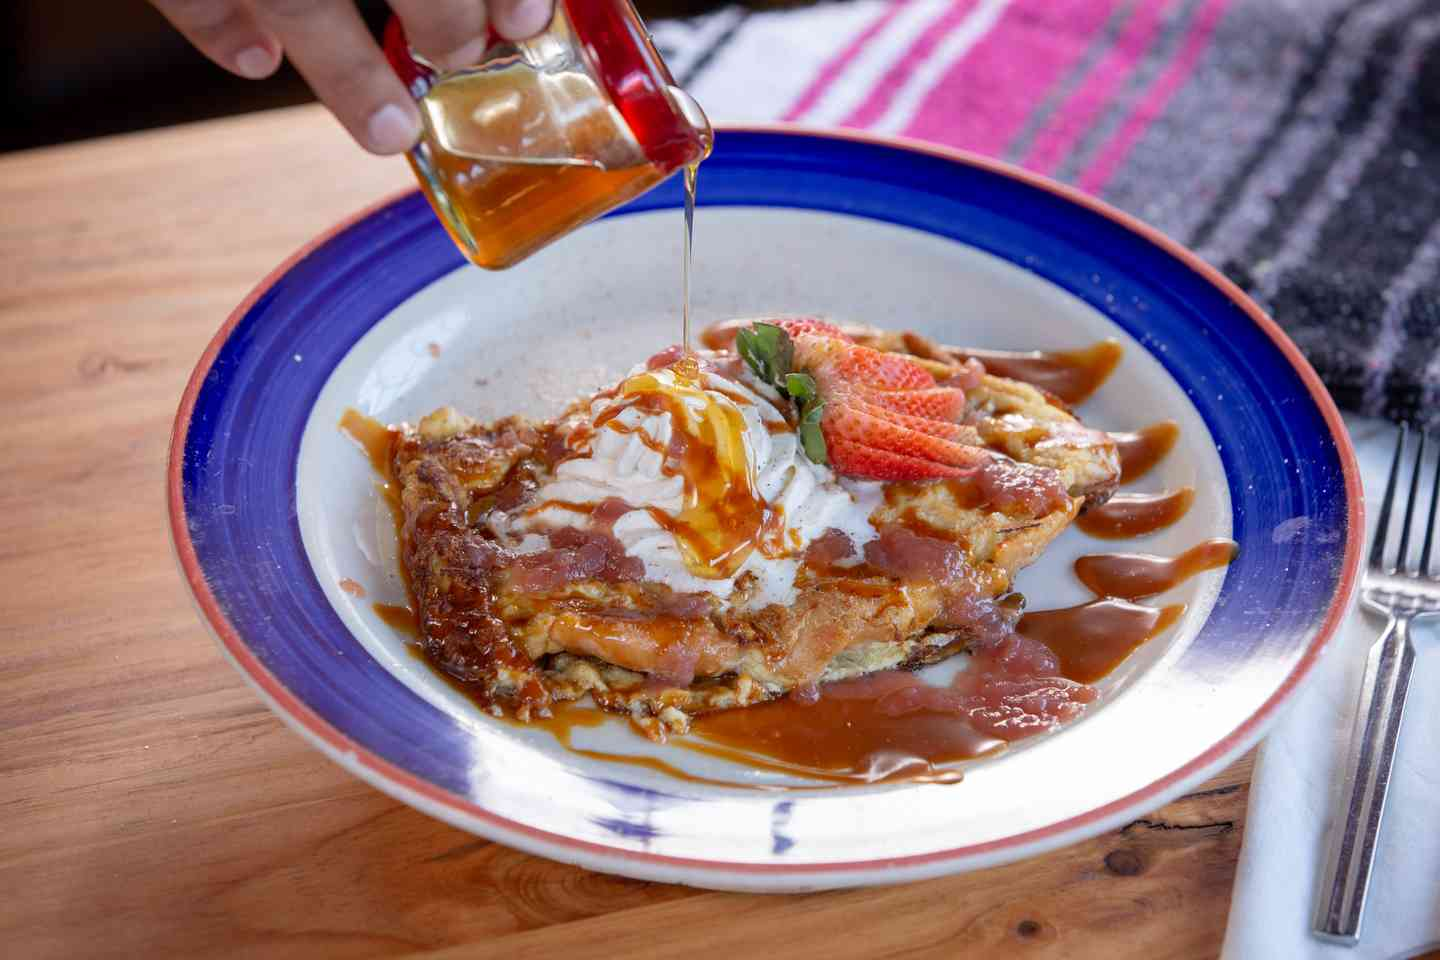 MEXICAN STYLE FRENCH TOAST